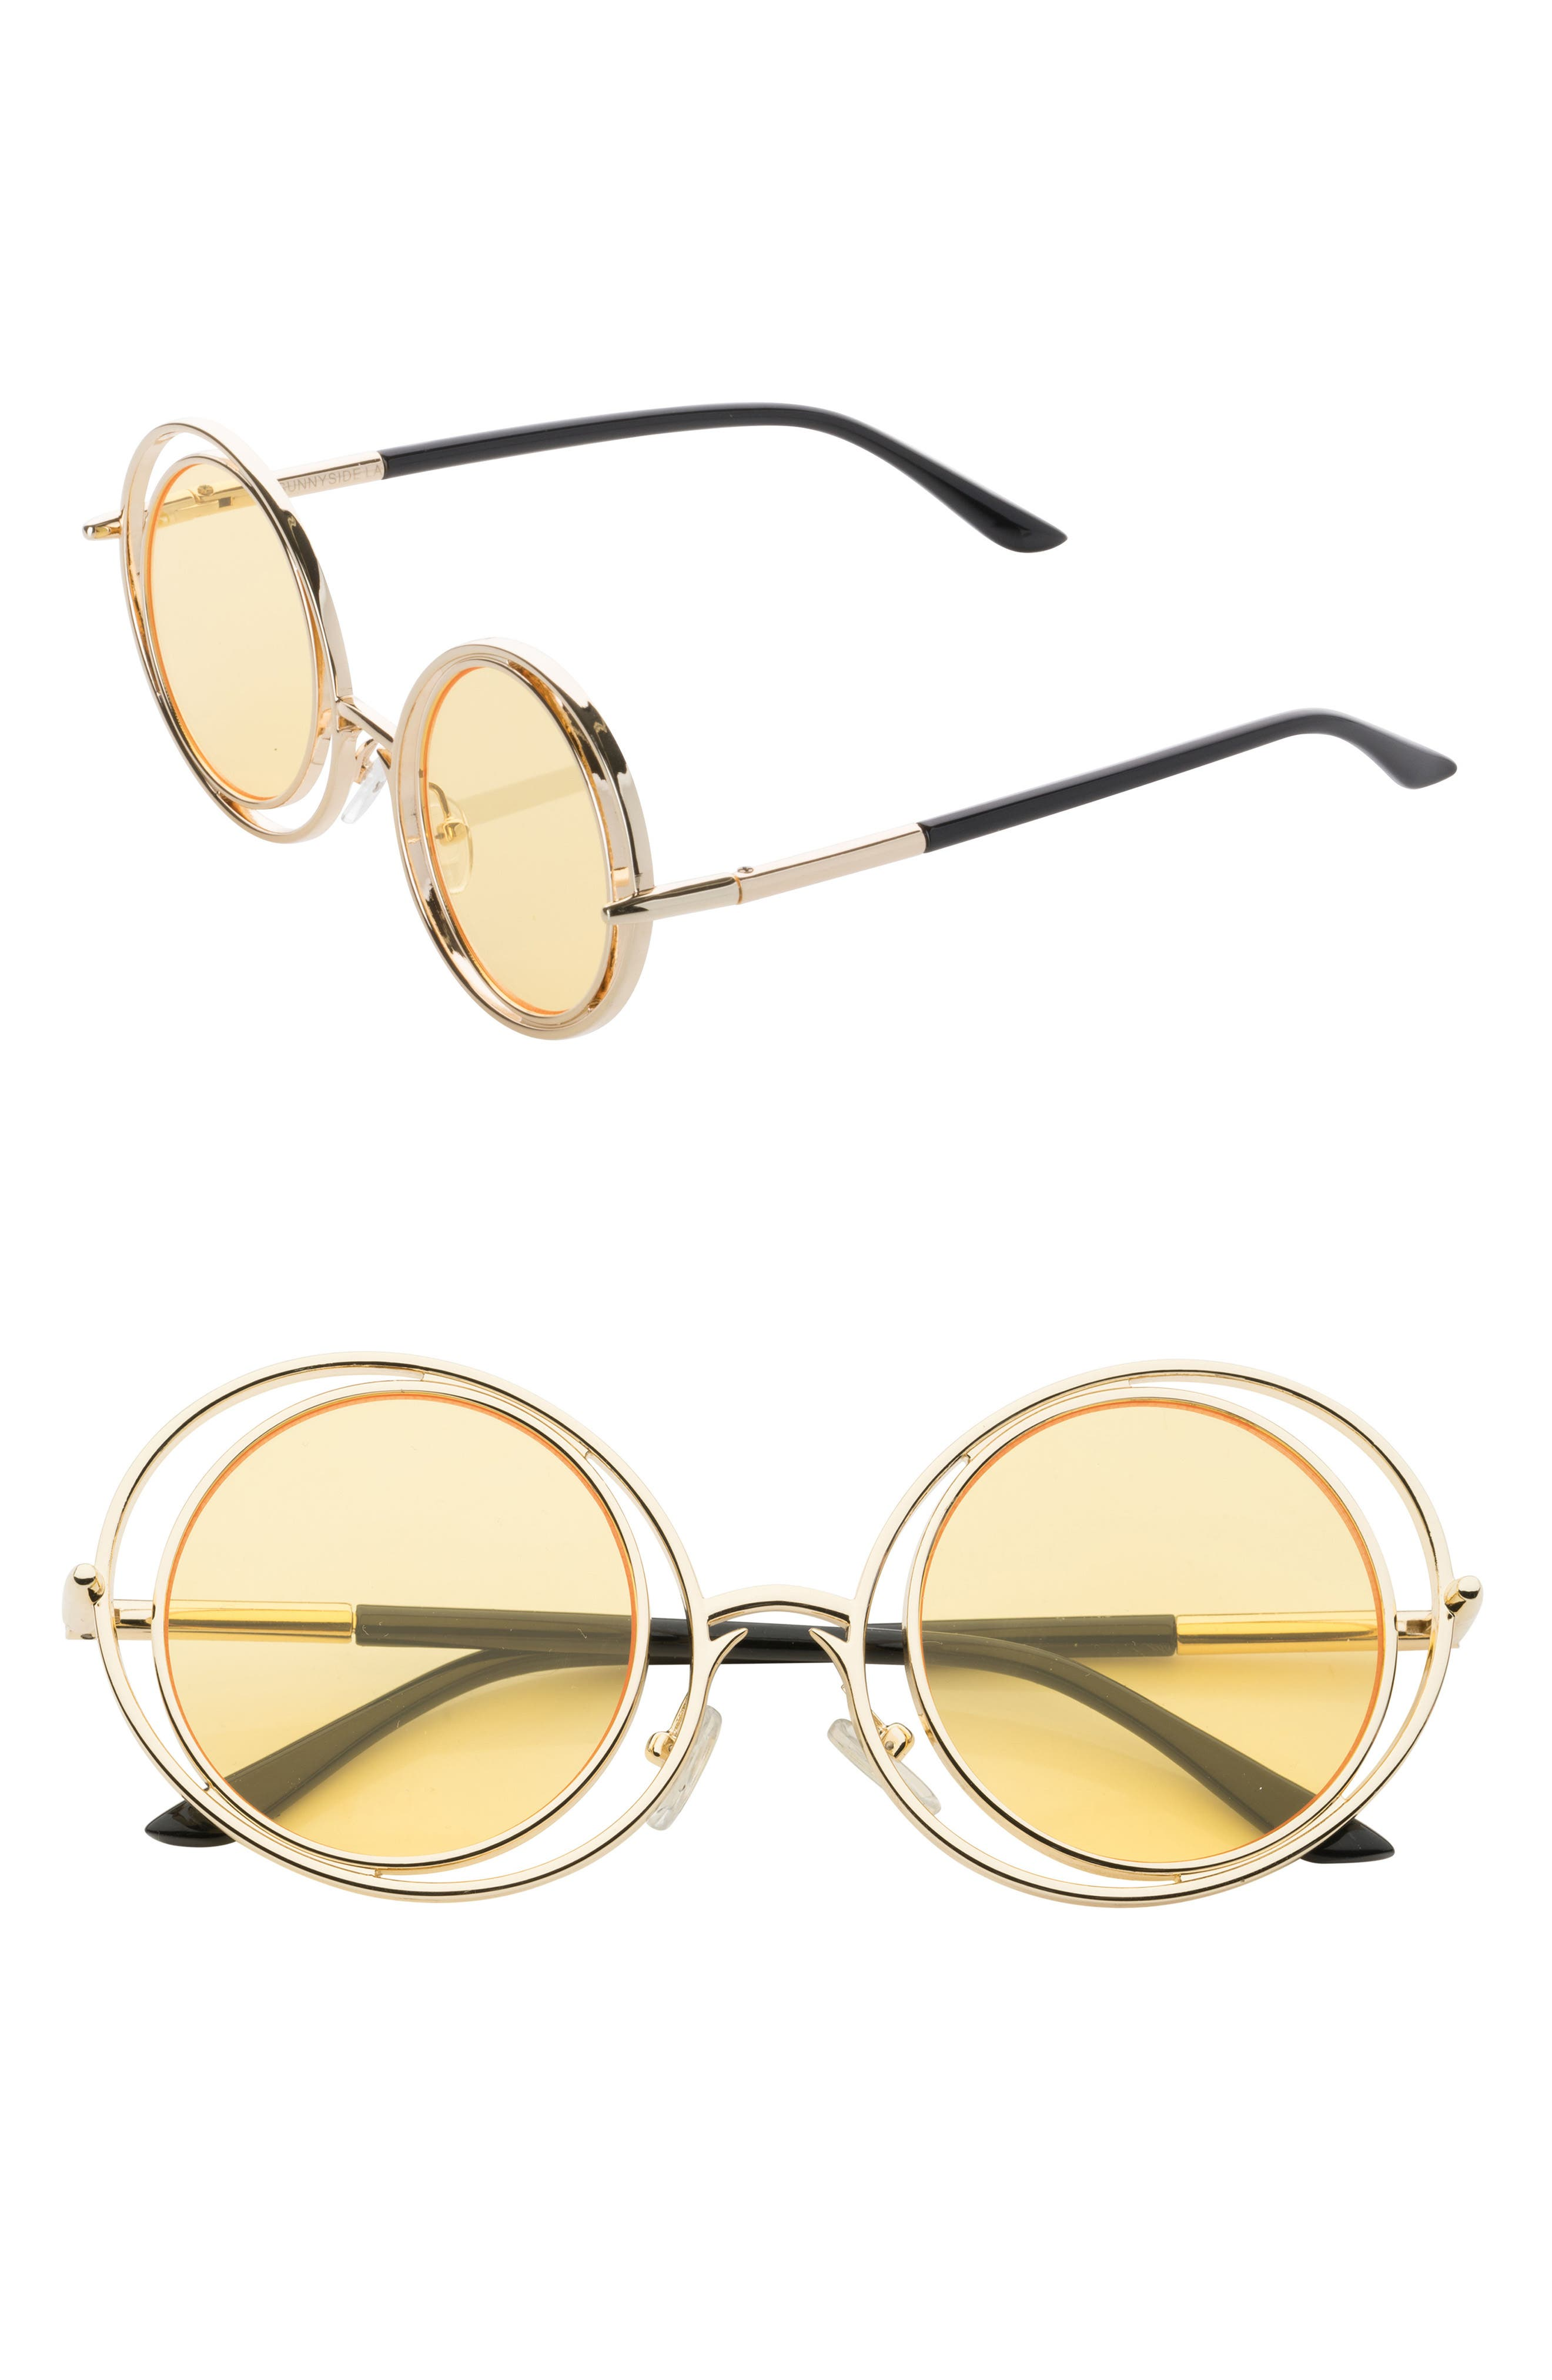 55mm Round Sunglasses,                         Main,                         color, Gold/ Yellow